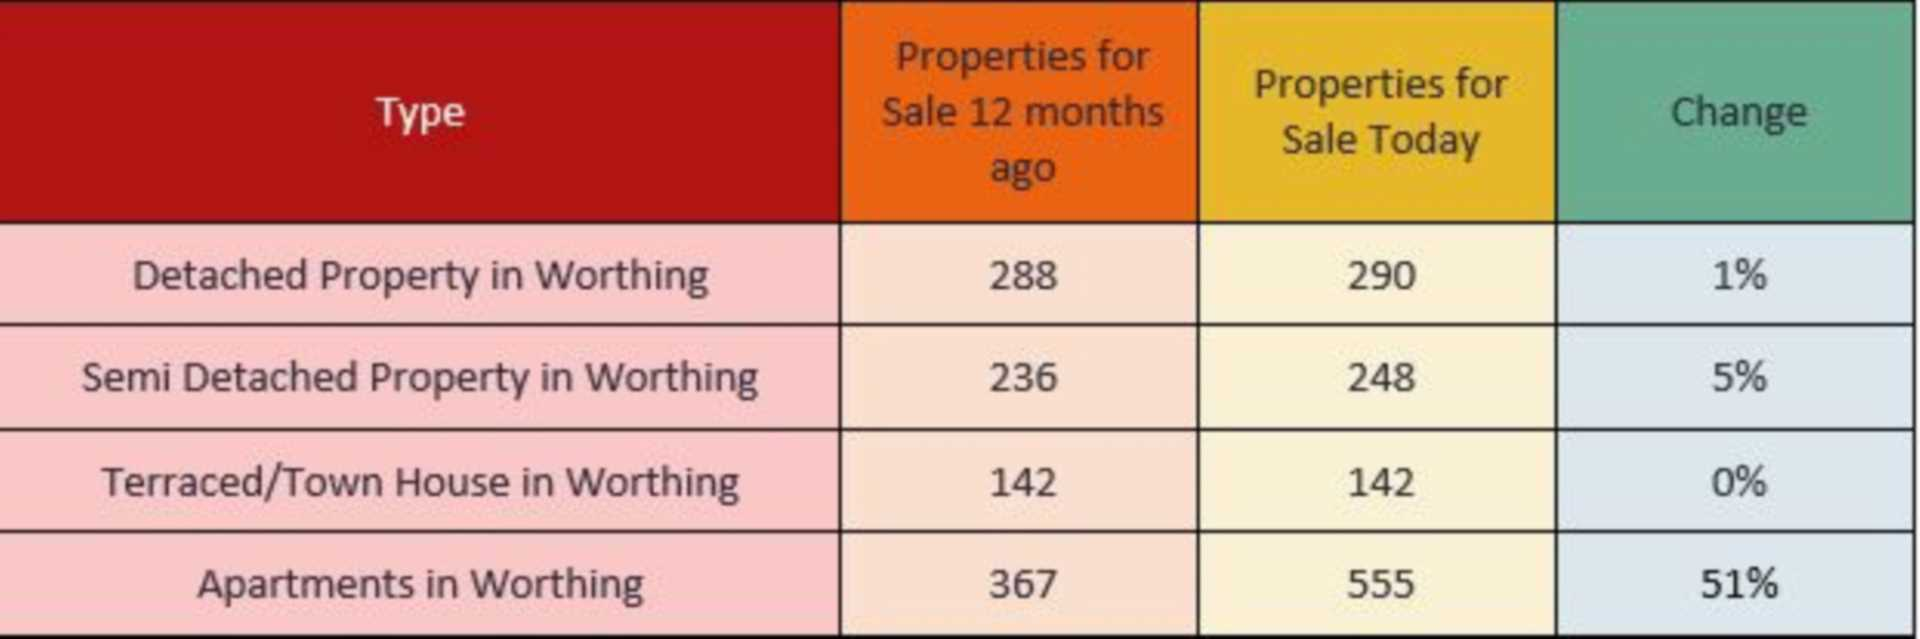 20% more properties on the market than 12 months ago